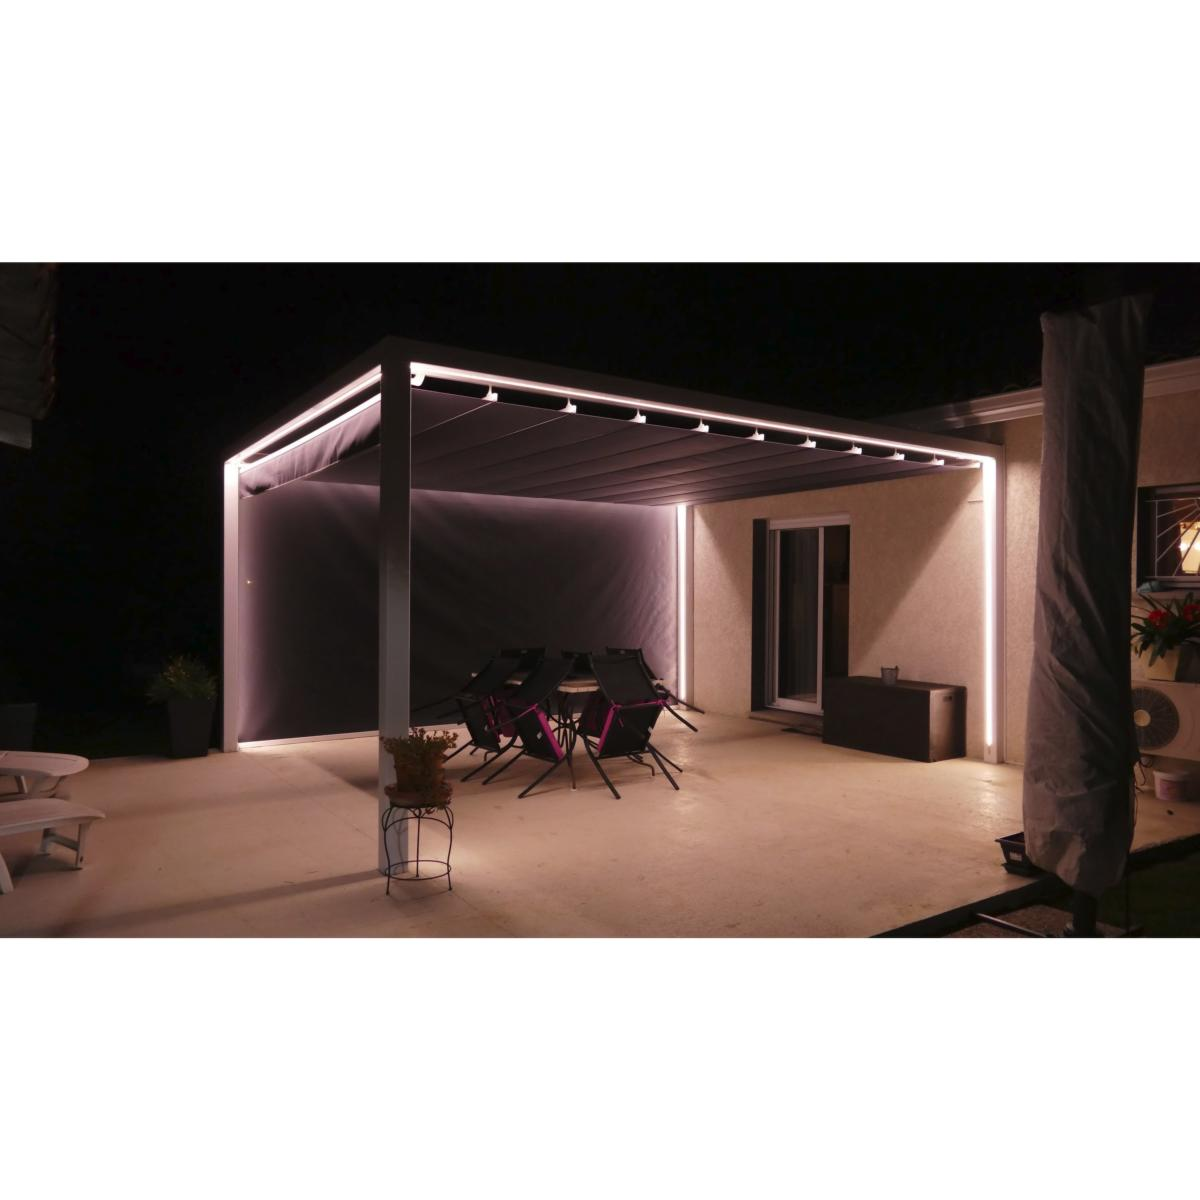 30 meilleur de luminaire exterieur pour pergola hyt4 luminaire salon. Black Bedroom Furniture Sets. Home Design Ideas